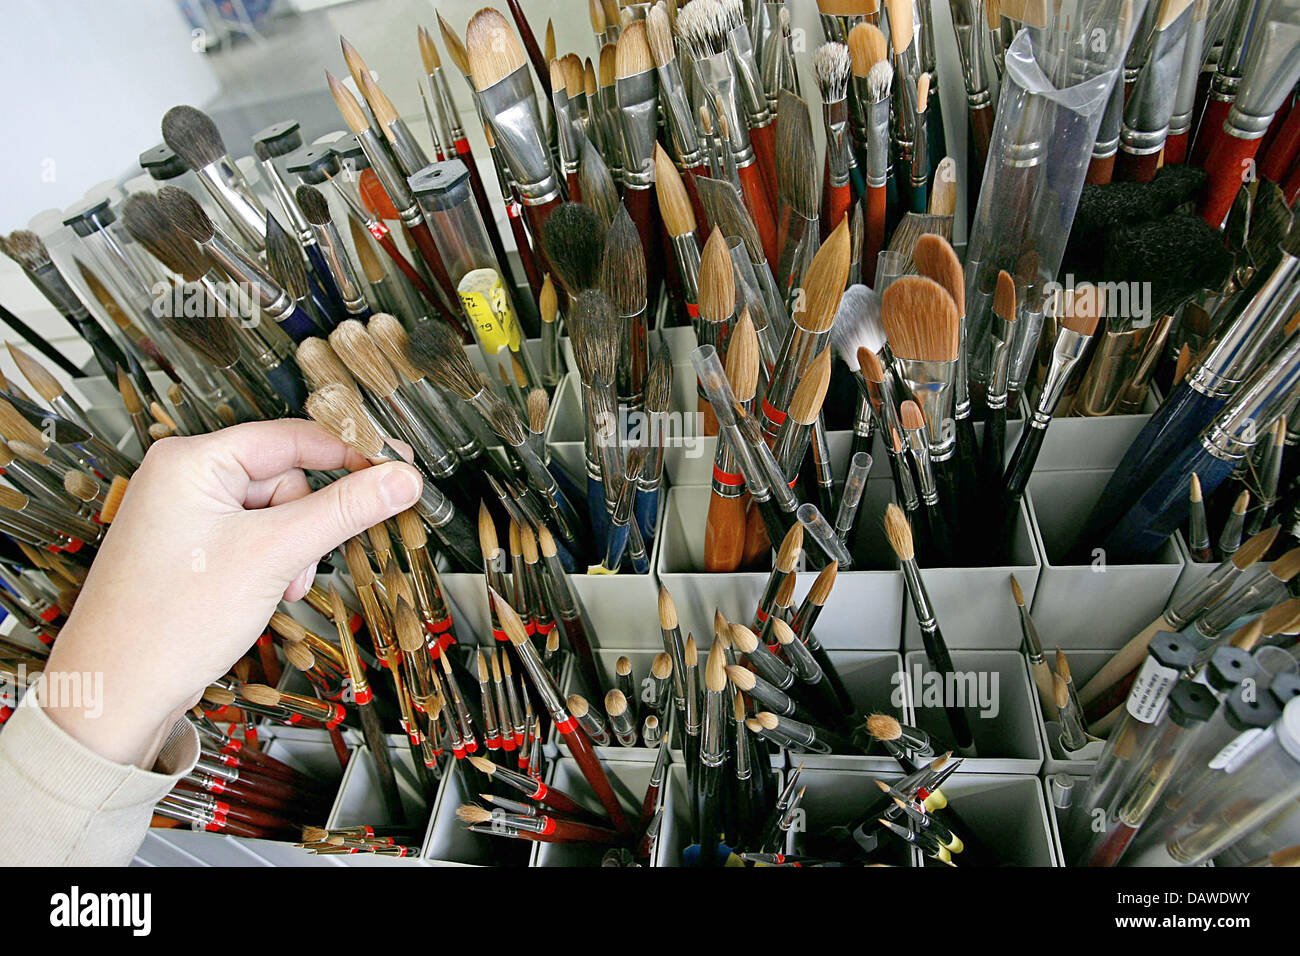 Various types of brushes are pictured at the artist's brush factory Defet Gmbh in Nuremberg, Germany, 27 February Stock Photo